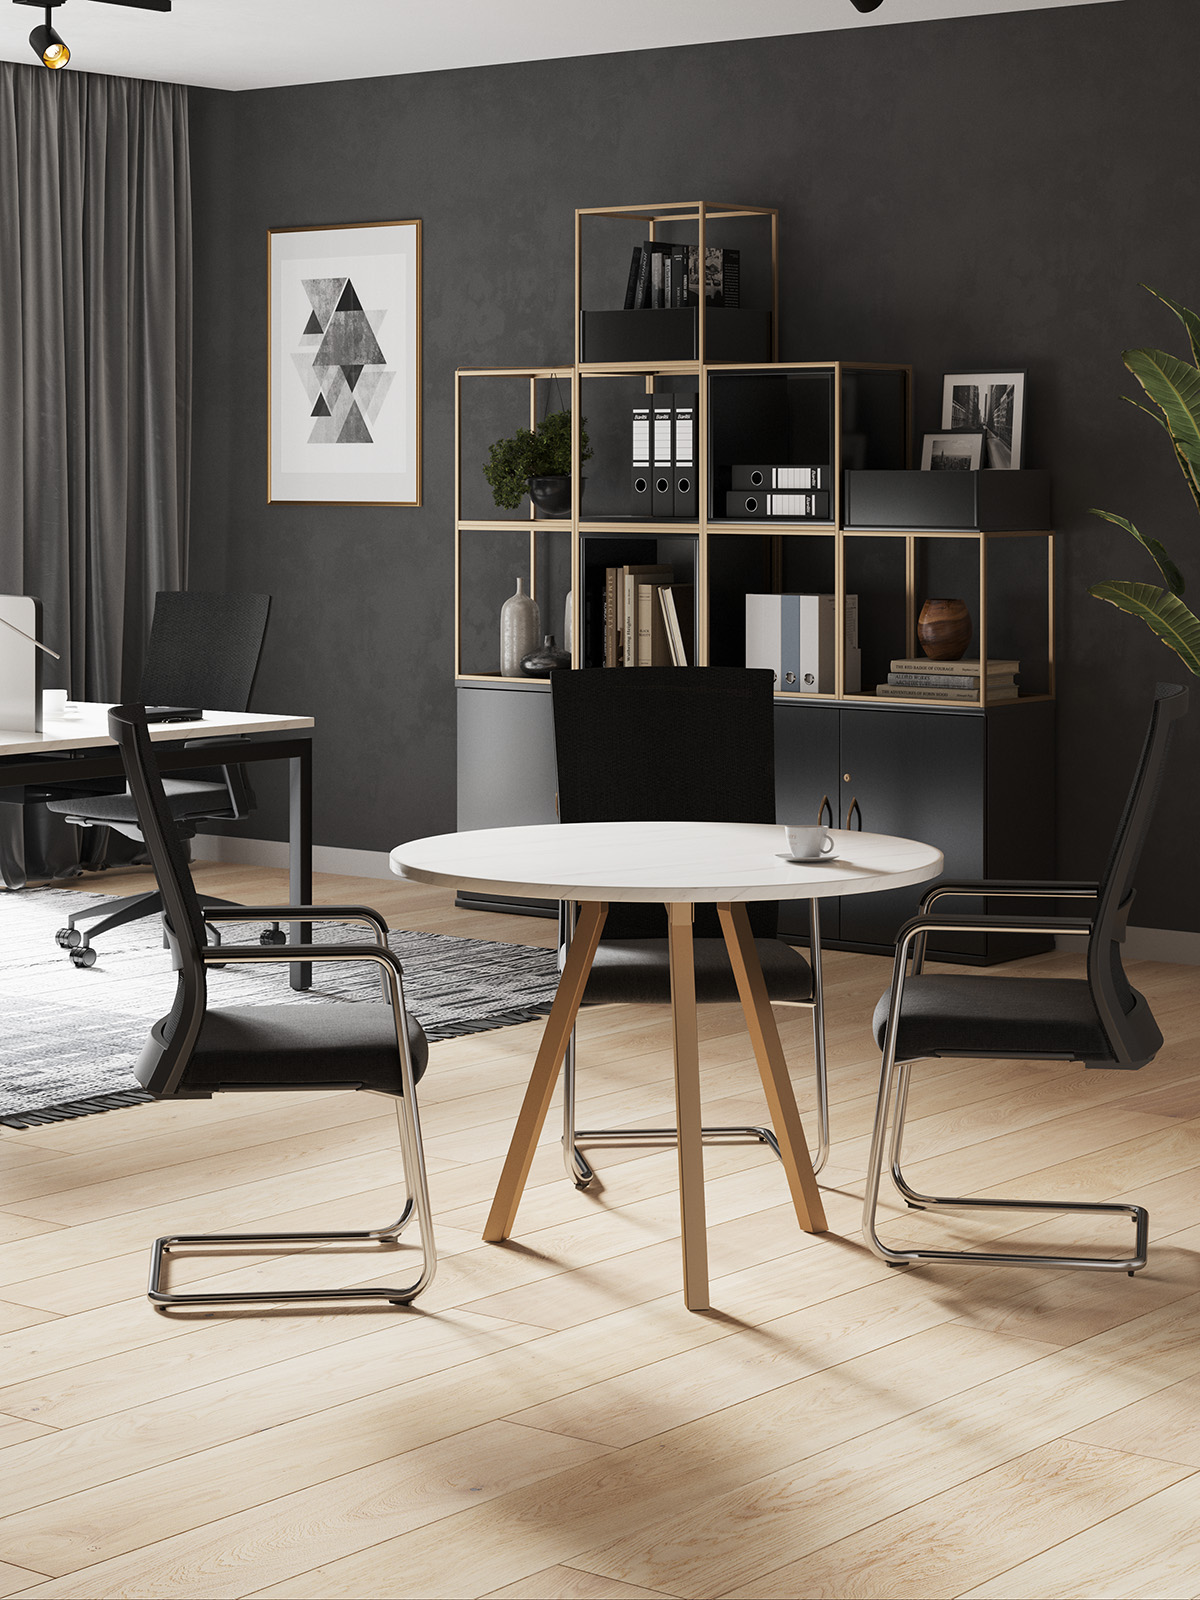 Grid Cube Storage Metal Modern Office Furniture Gold Bronze Marble Desk Circular Table Round